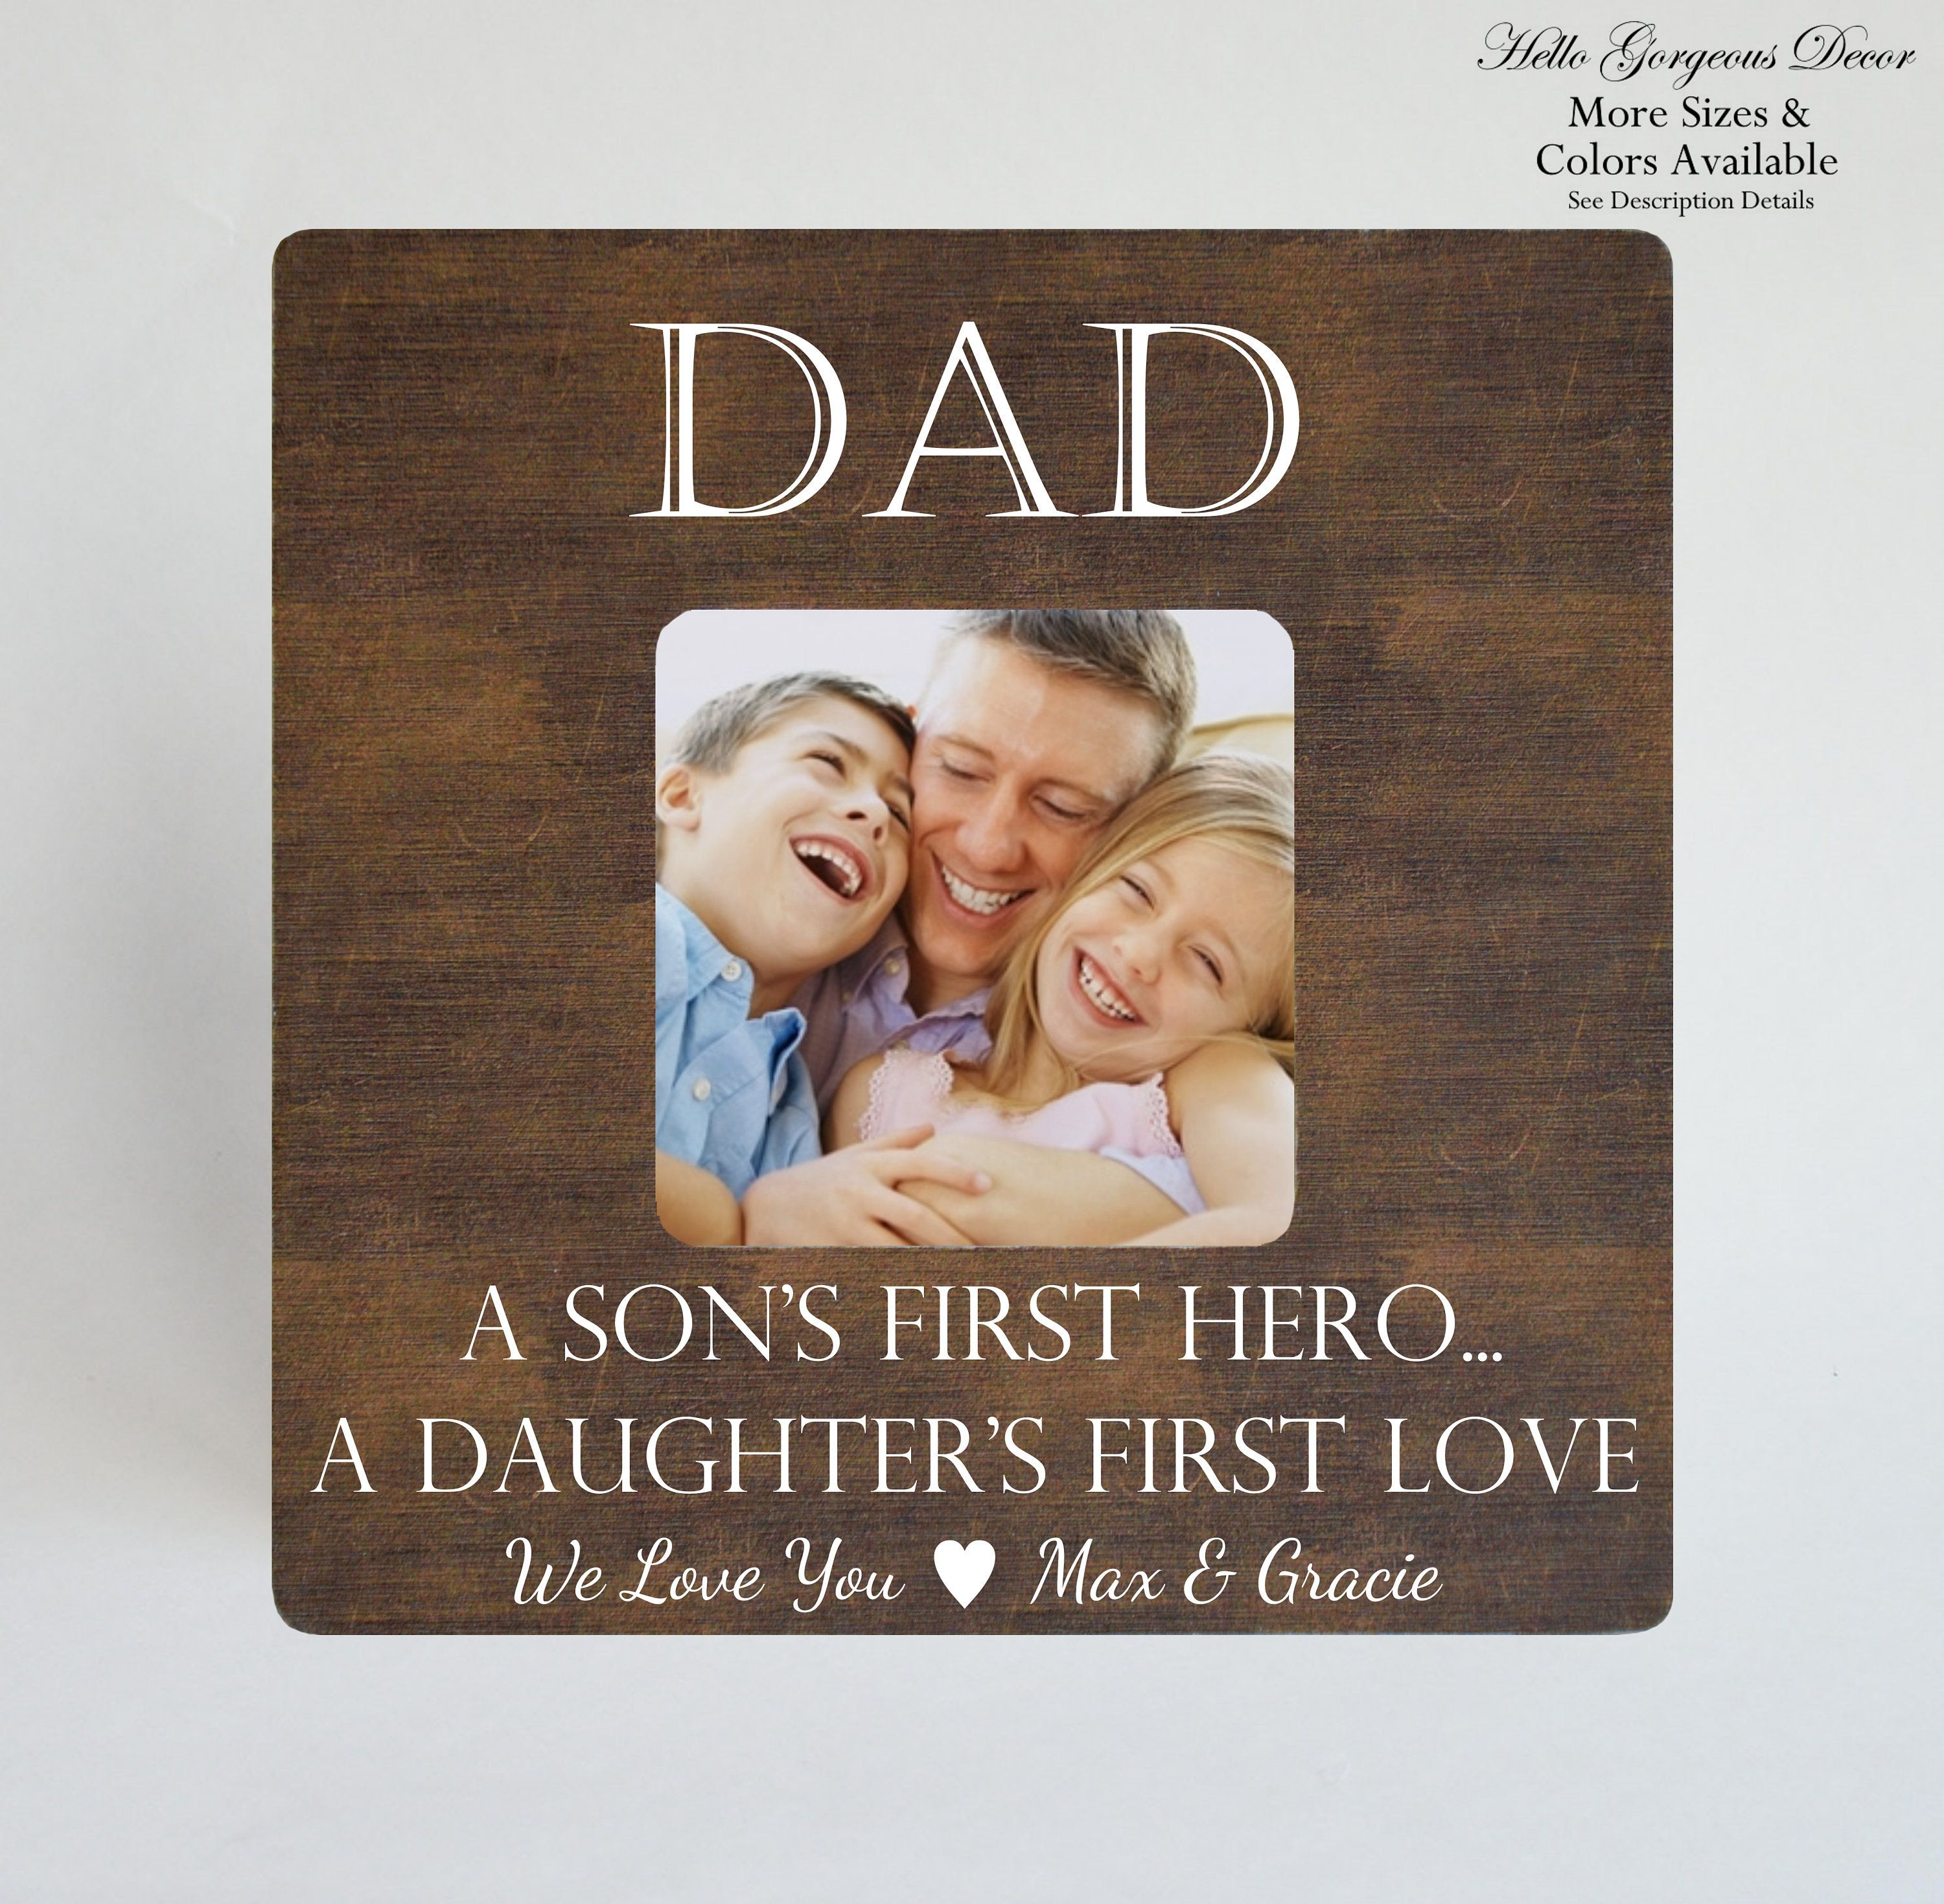 a daughter/'s first love Gift from Daughter Son A son/'s first hero Personalized Dad Picture Frame Dad Gift Father/'s Day Gift for Father